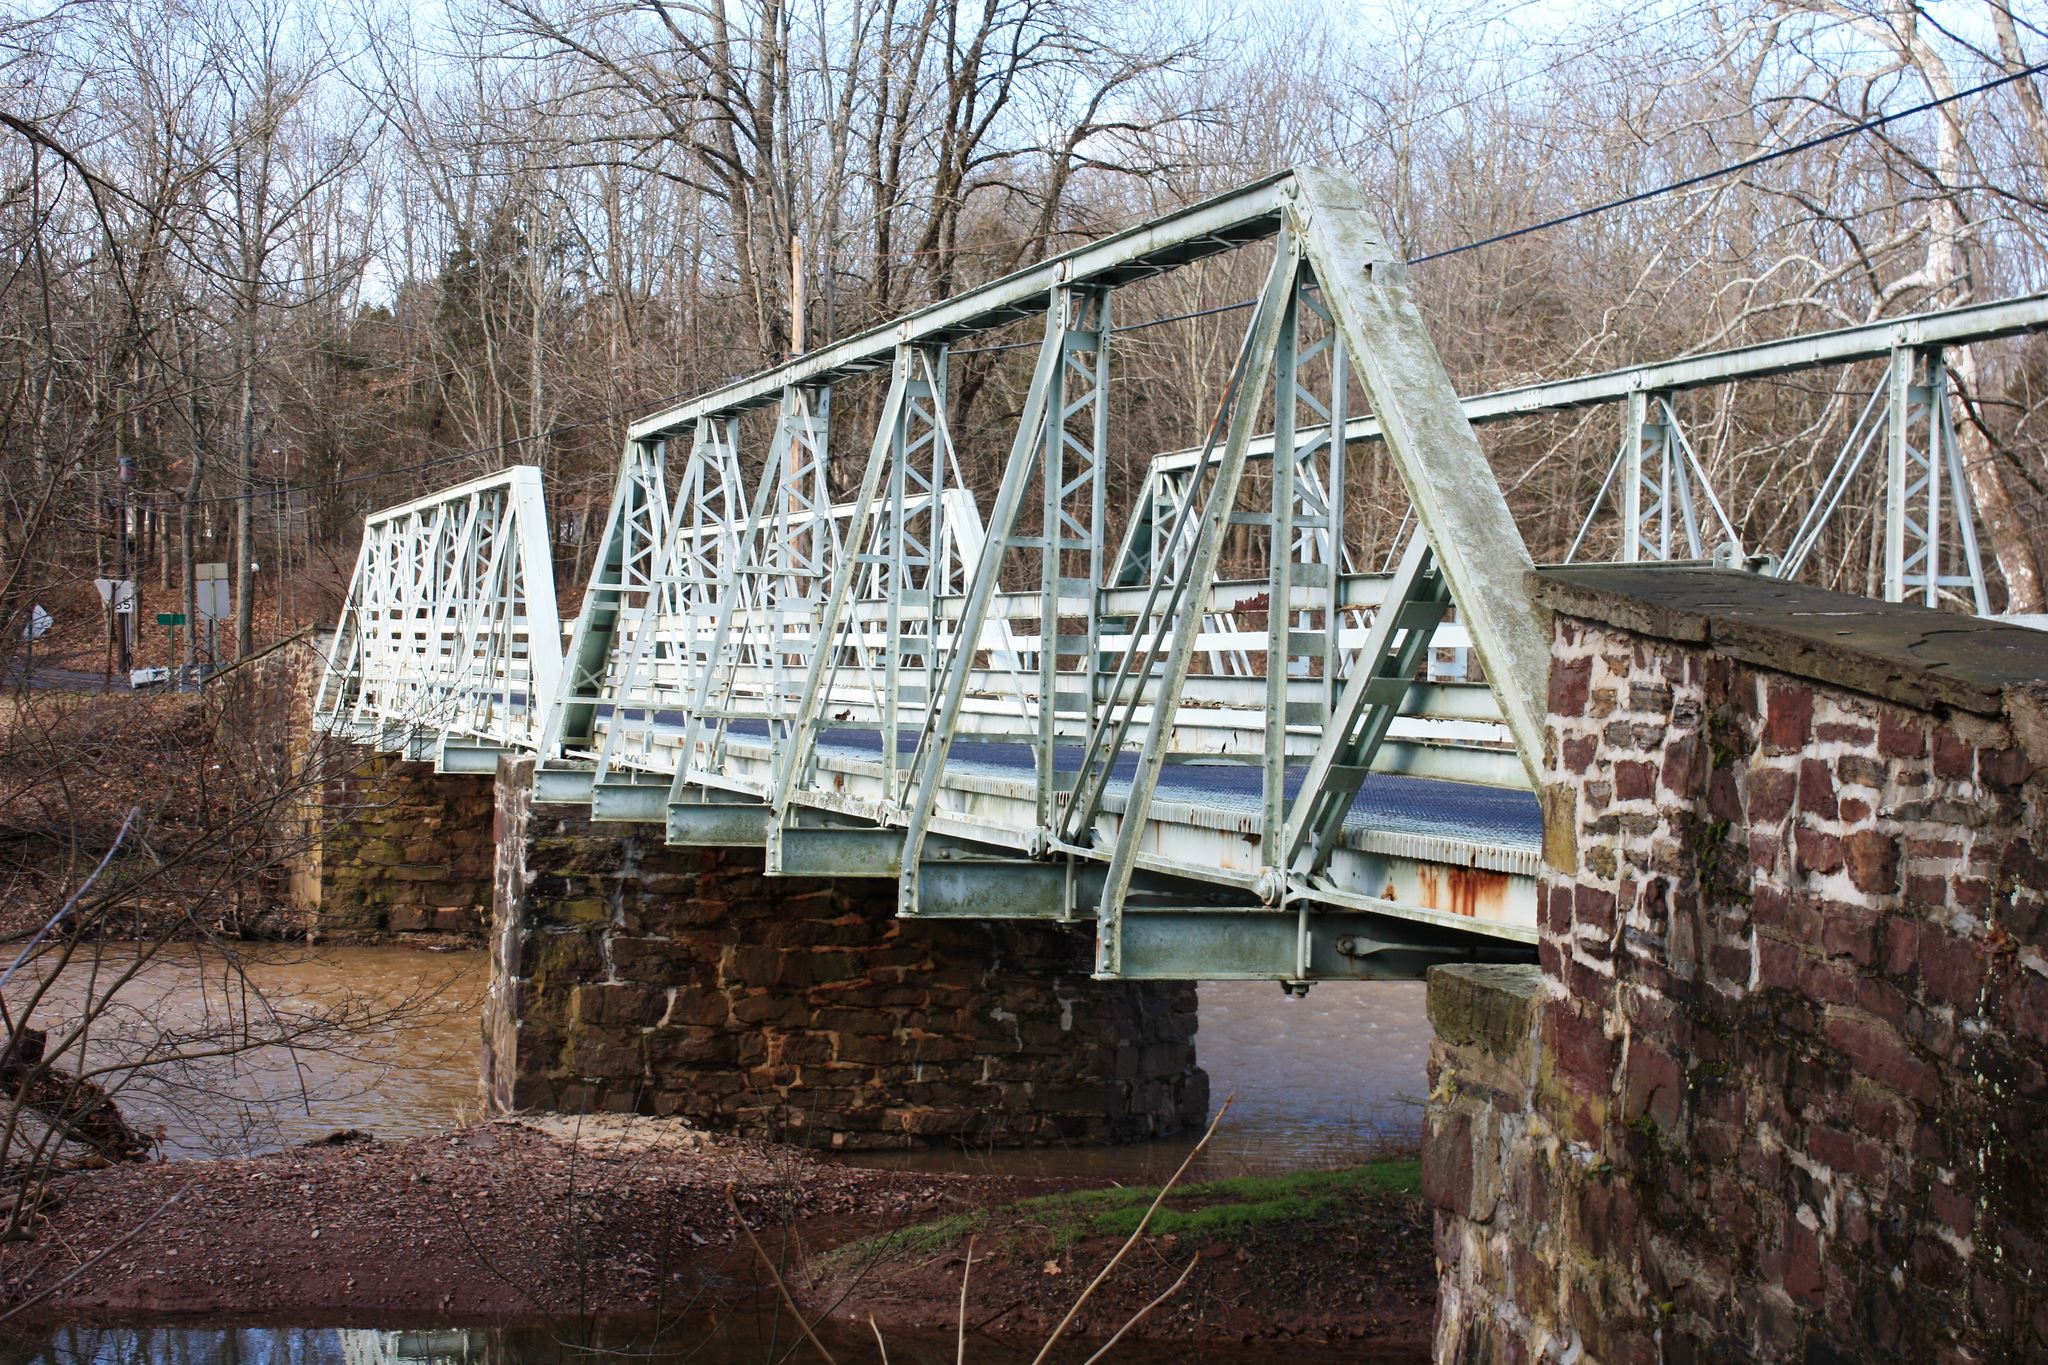 Camp Wawa Road Bridge